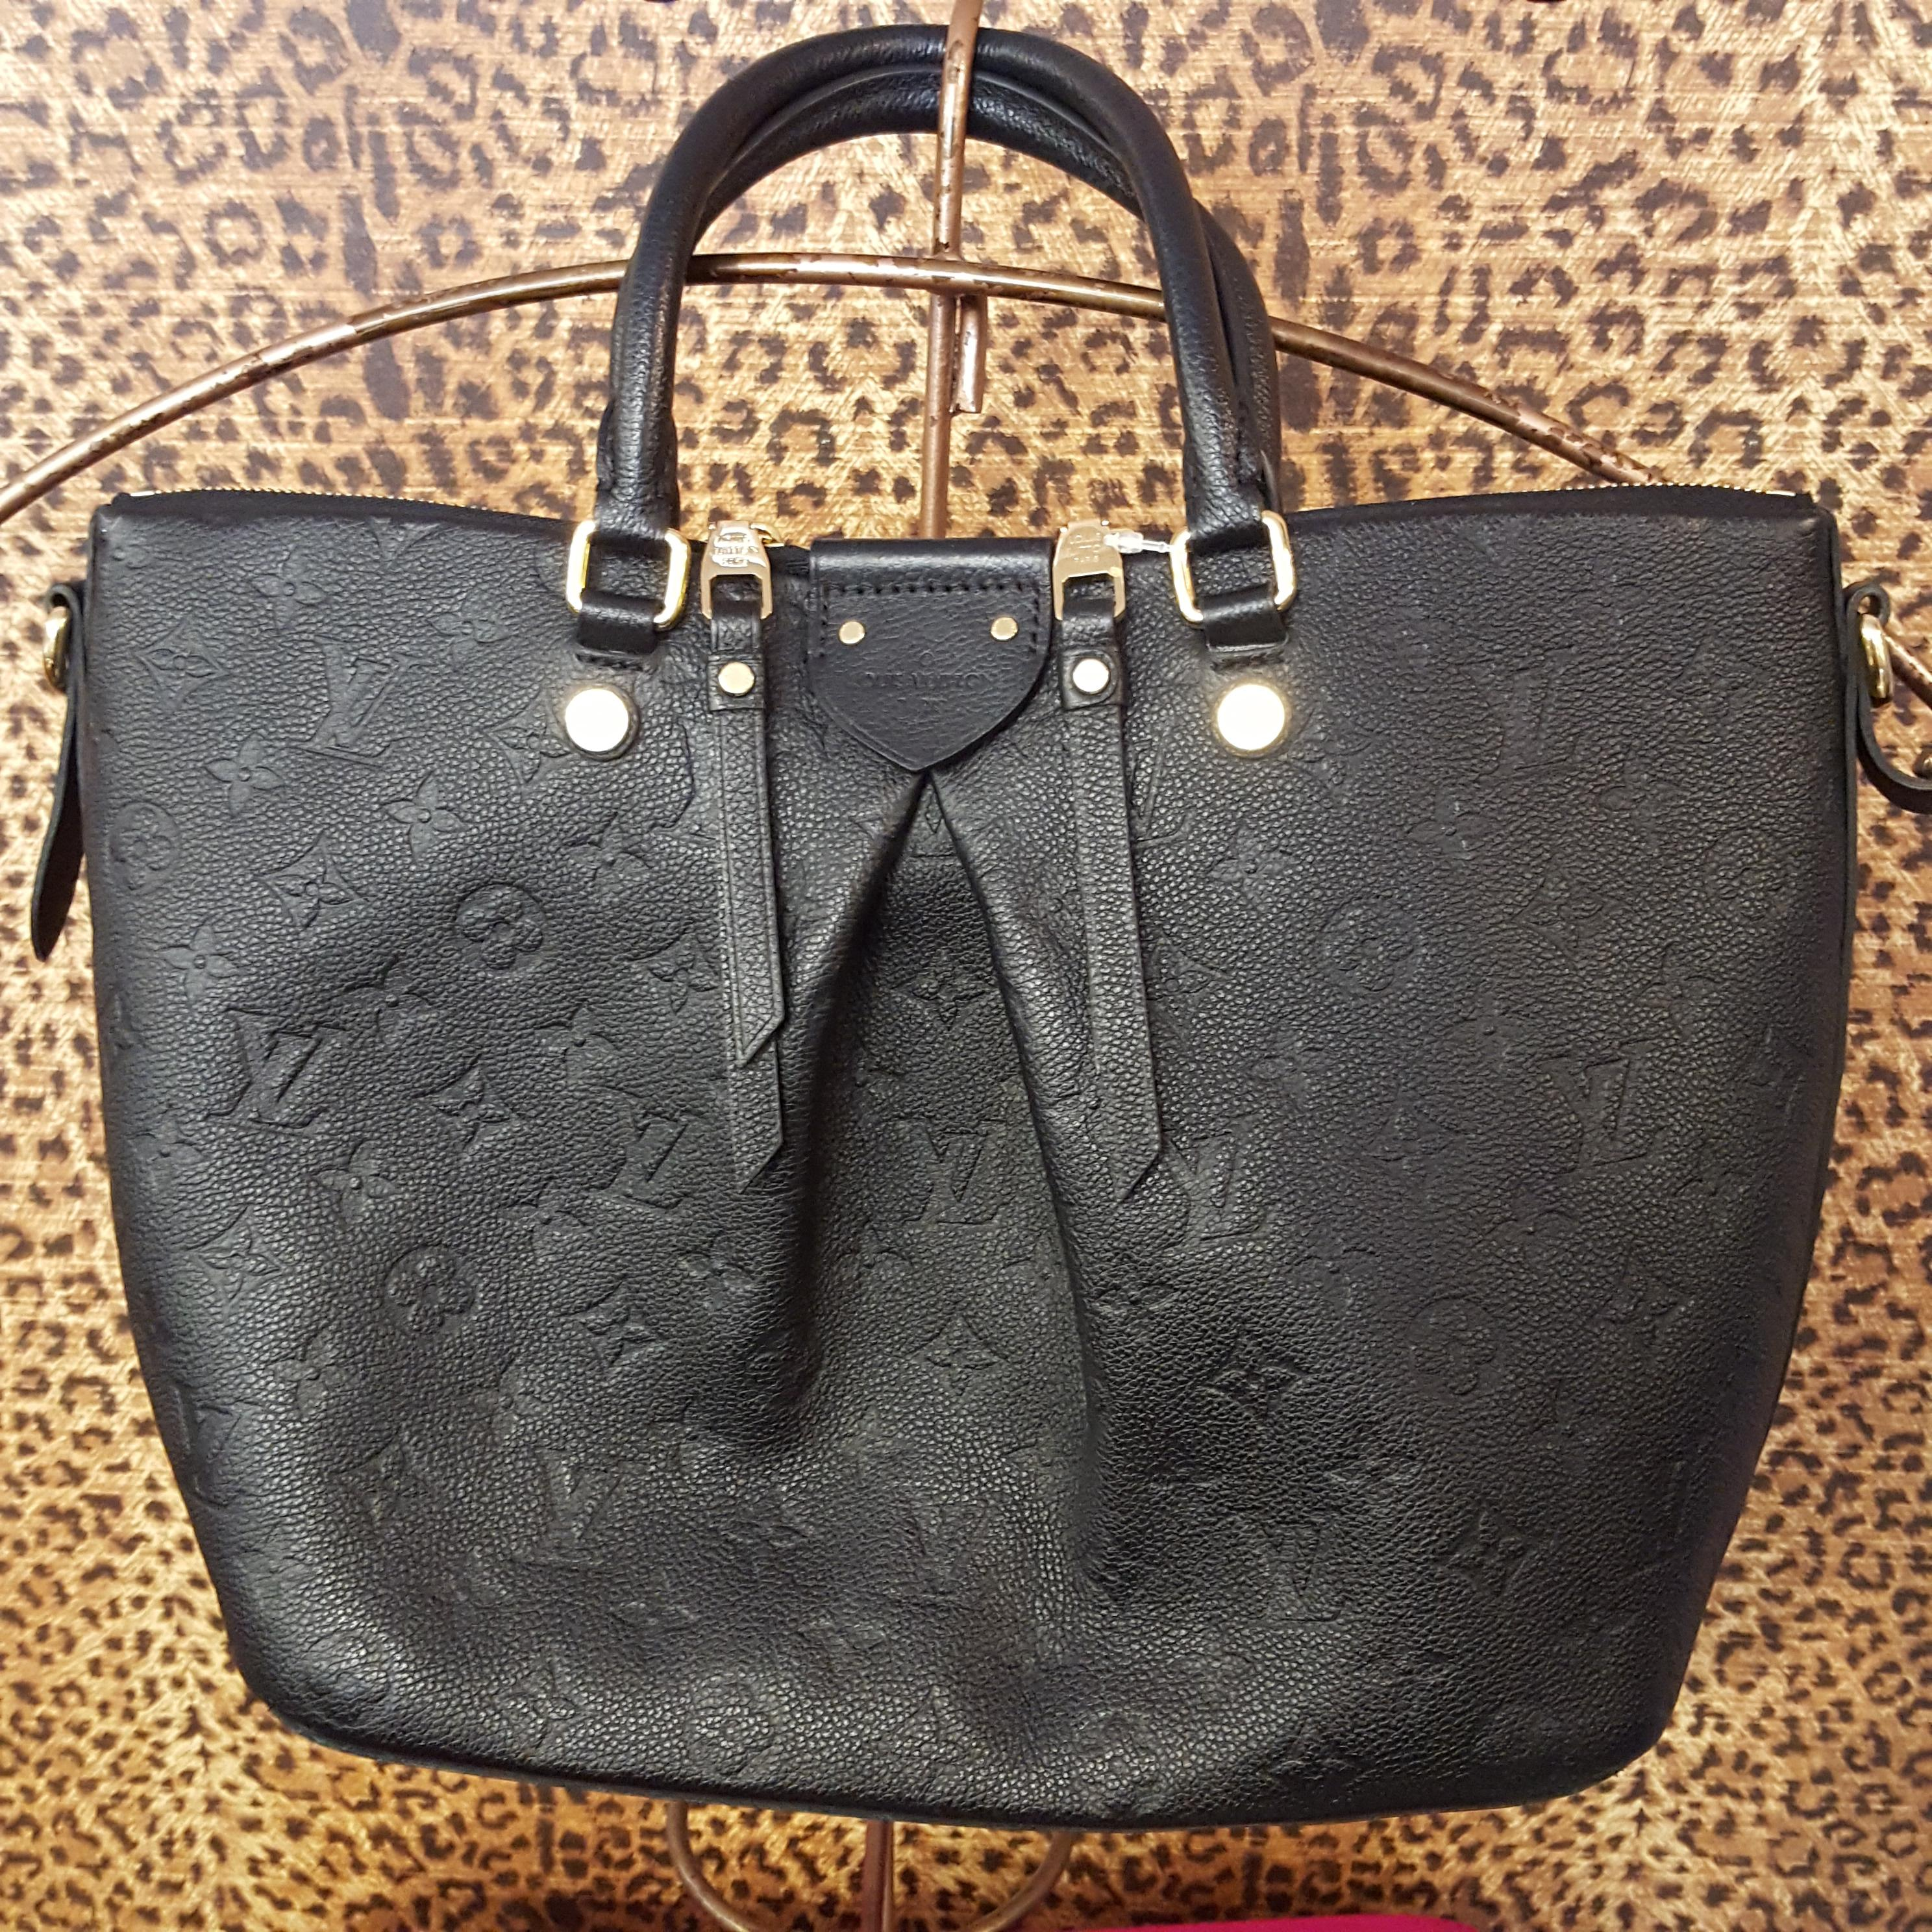 Louis Vuitton~ Leather, Black, Purses, Handbags Price: $2244.74